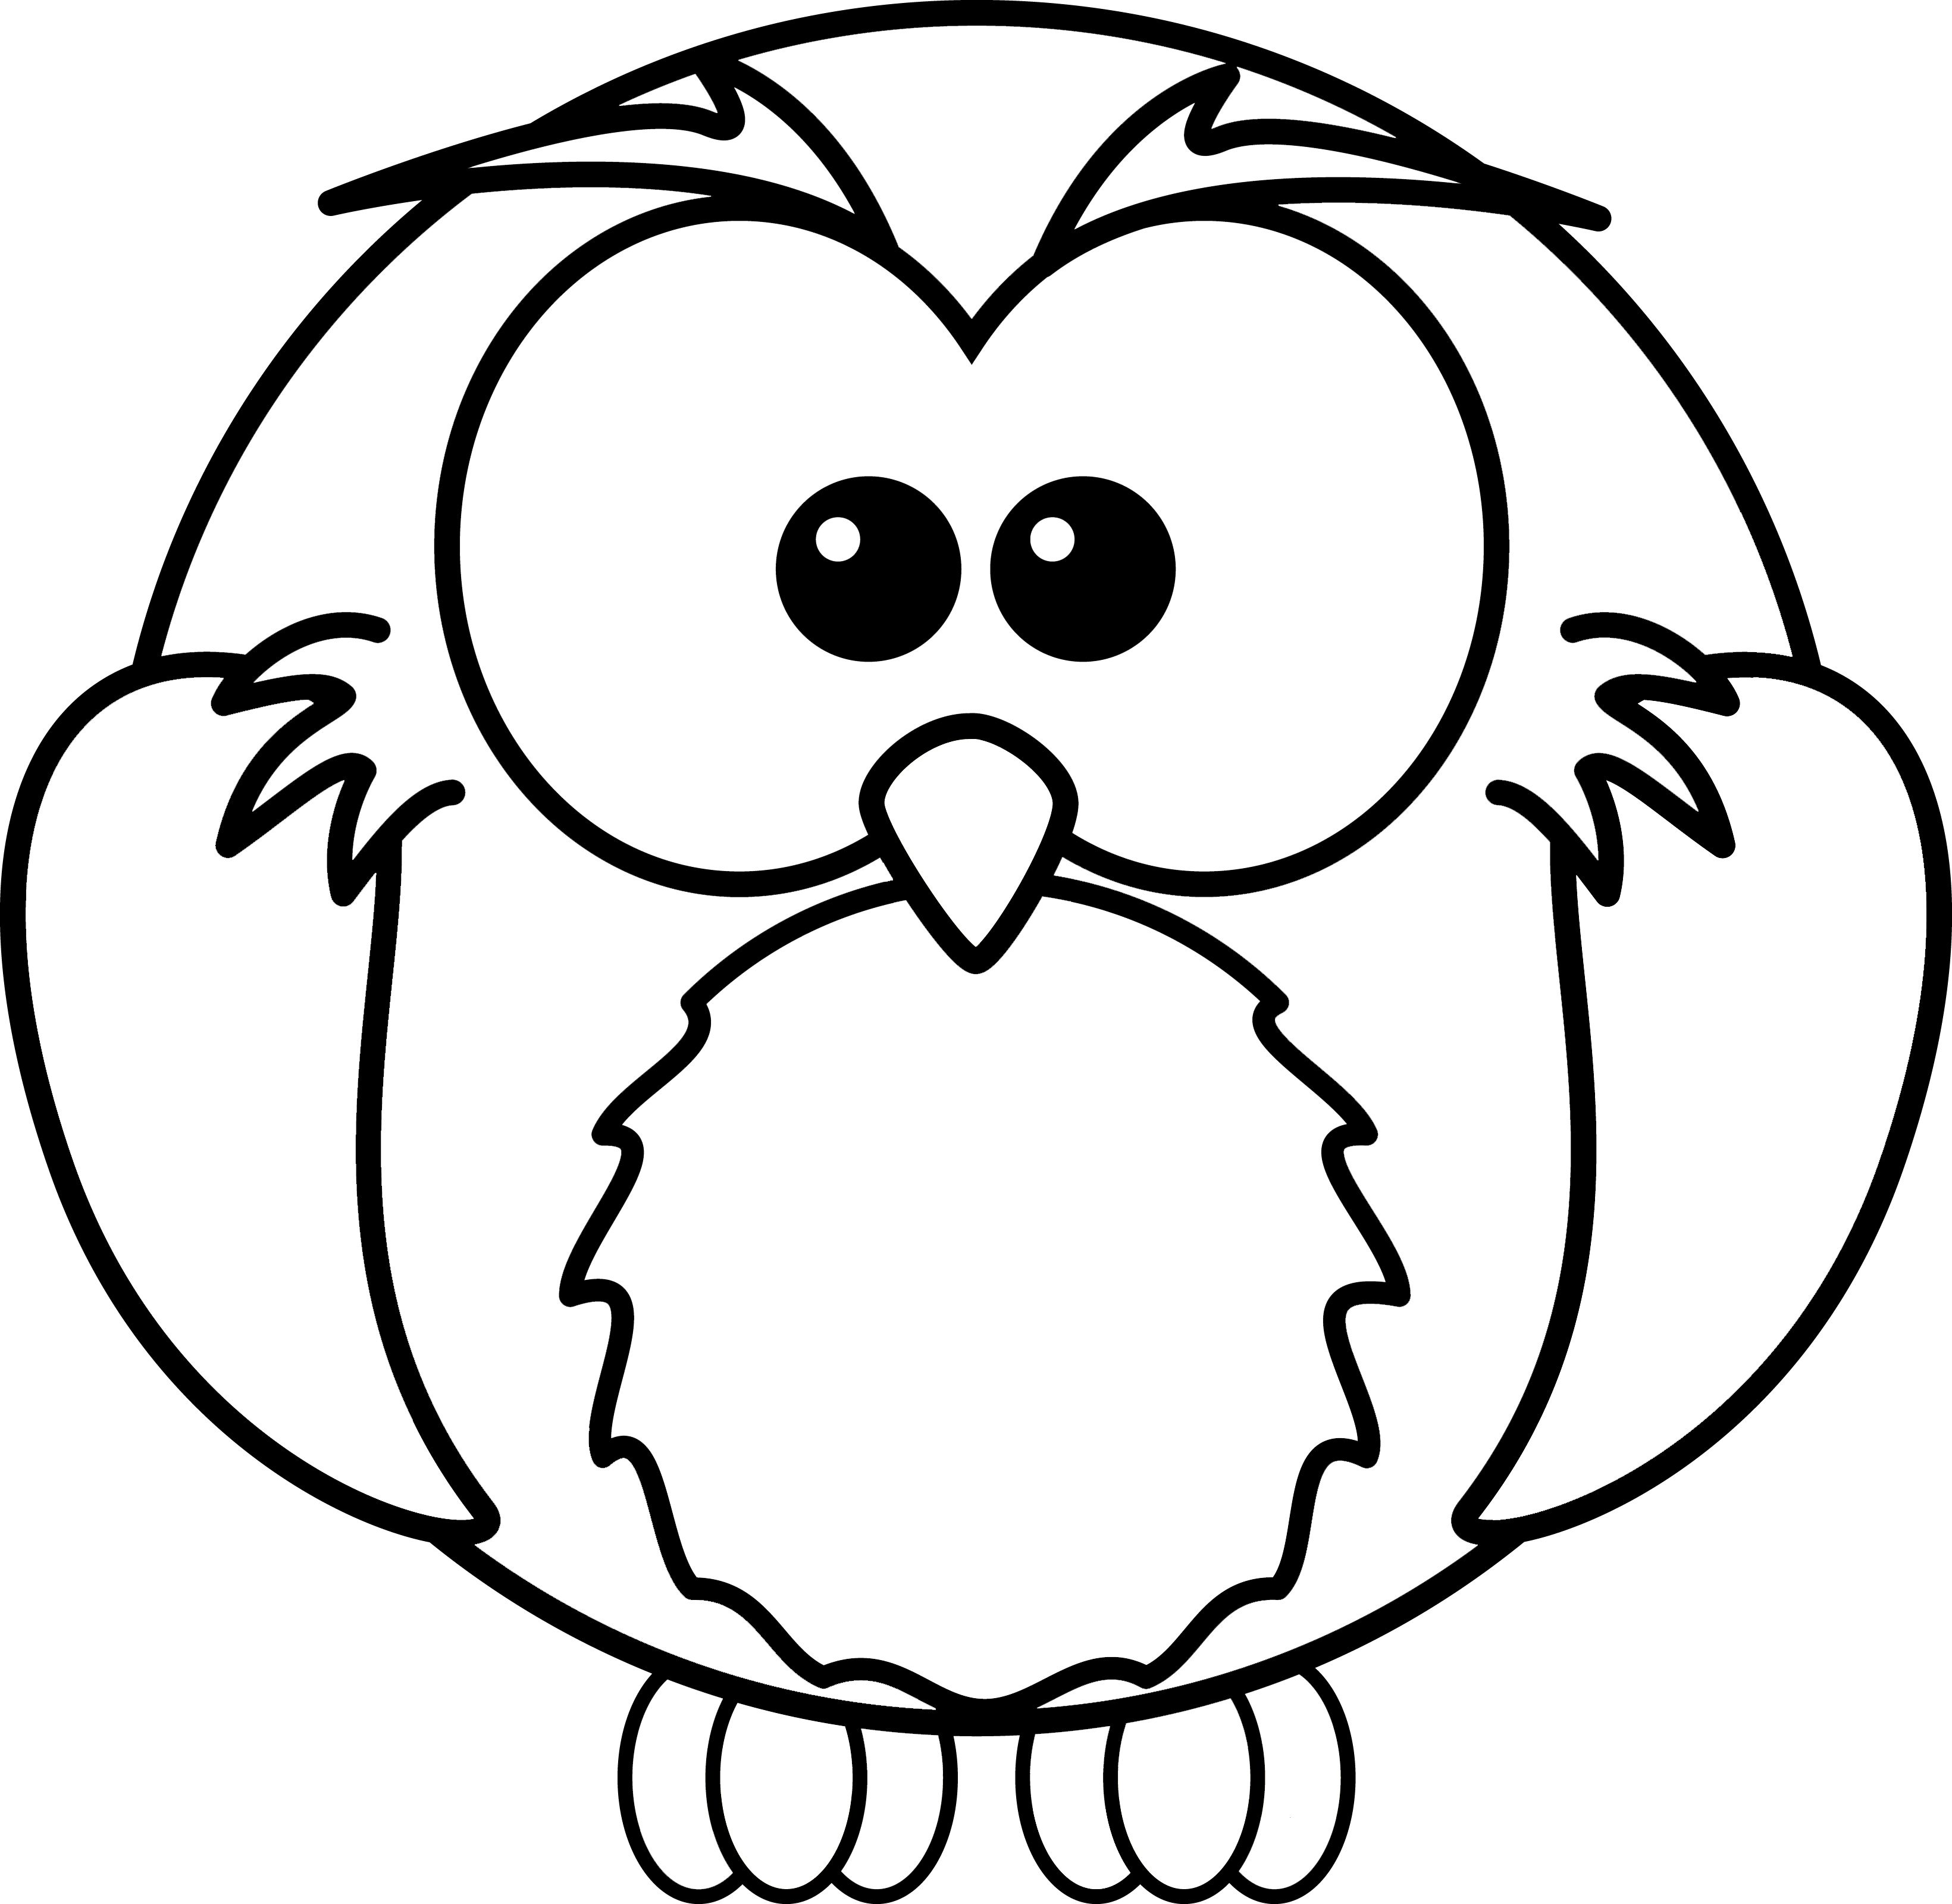 Free Printable Owl Coloring Pages For Kids | Owl Coloring